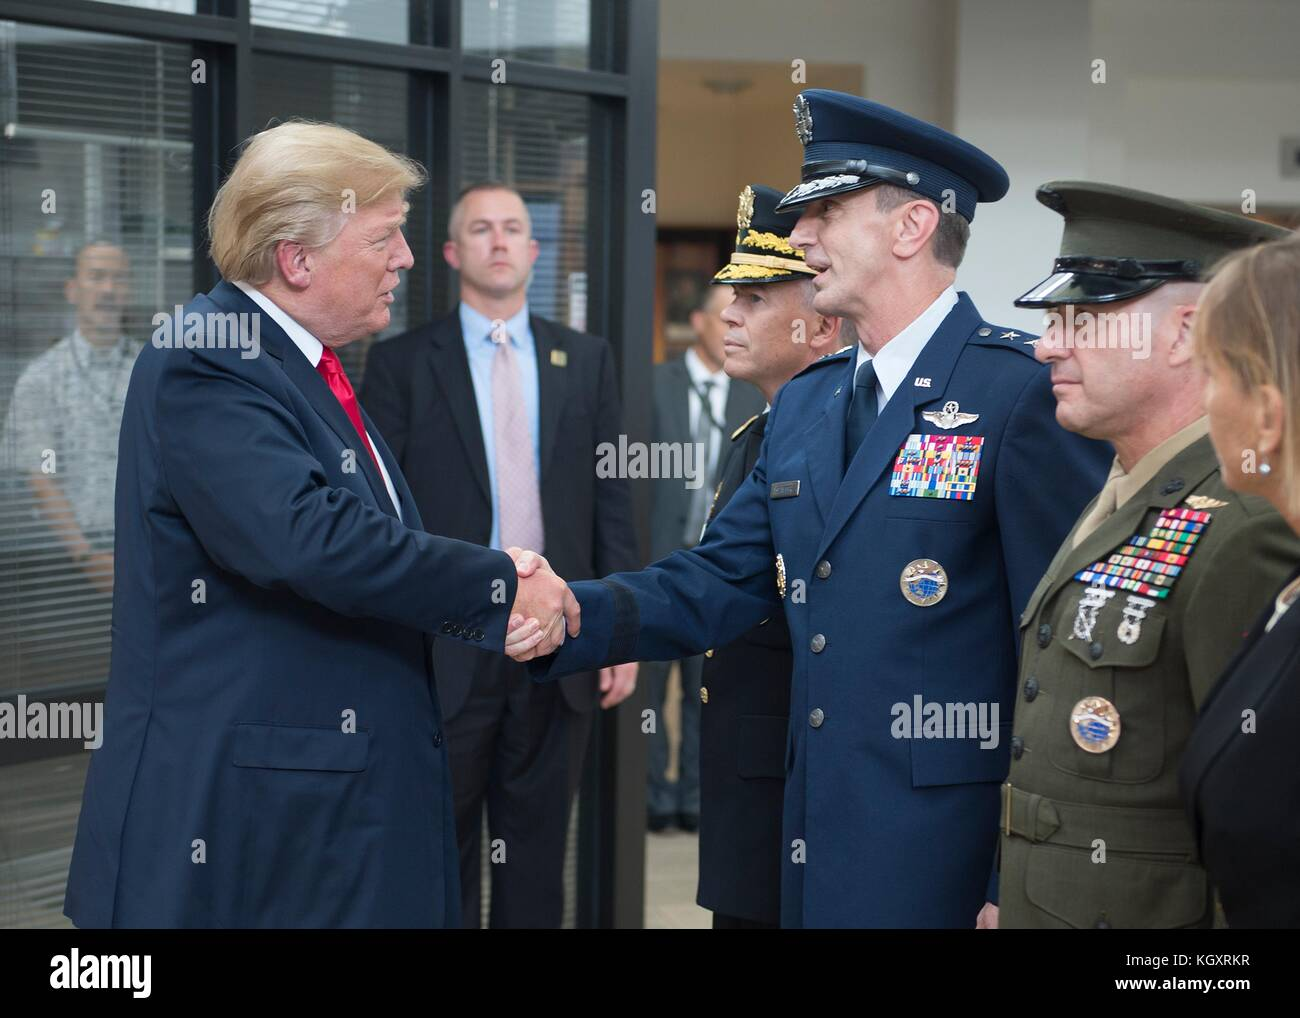 U.S. President Donald Trump (left) greets U.S. Pacific Command (USPACOM) Chief of Staff Kevin Schneider during an - Stock Image